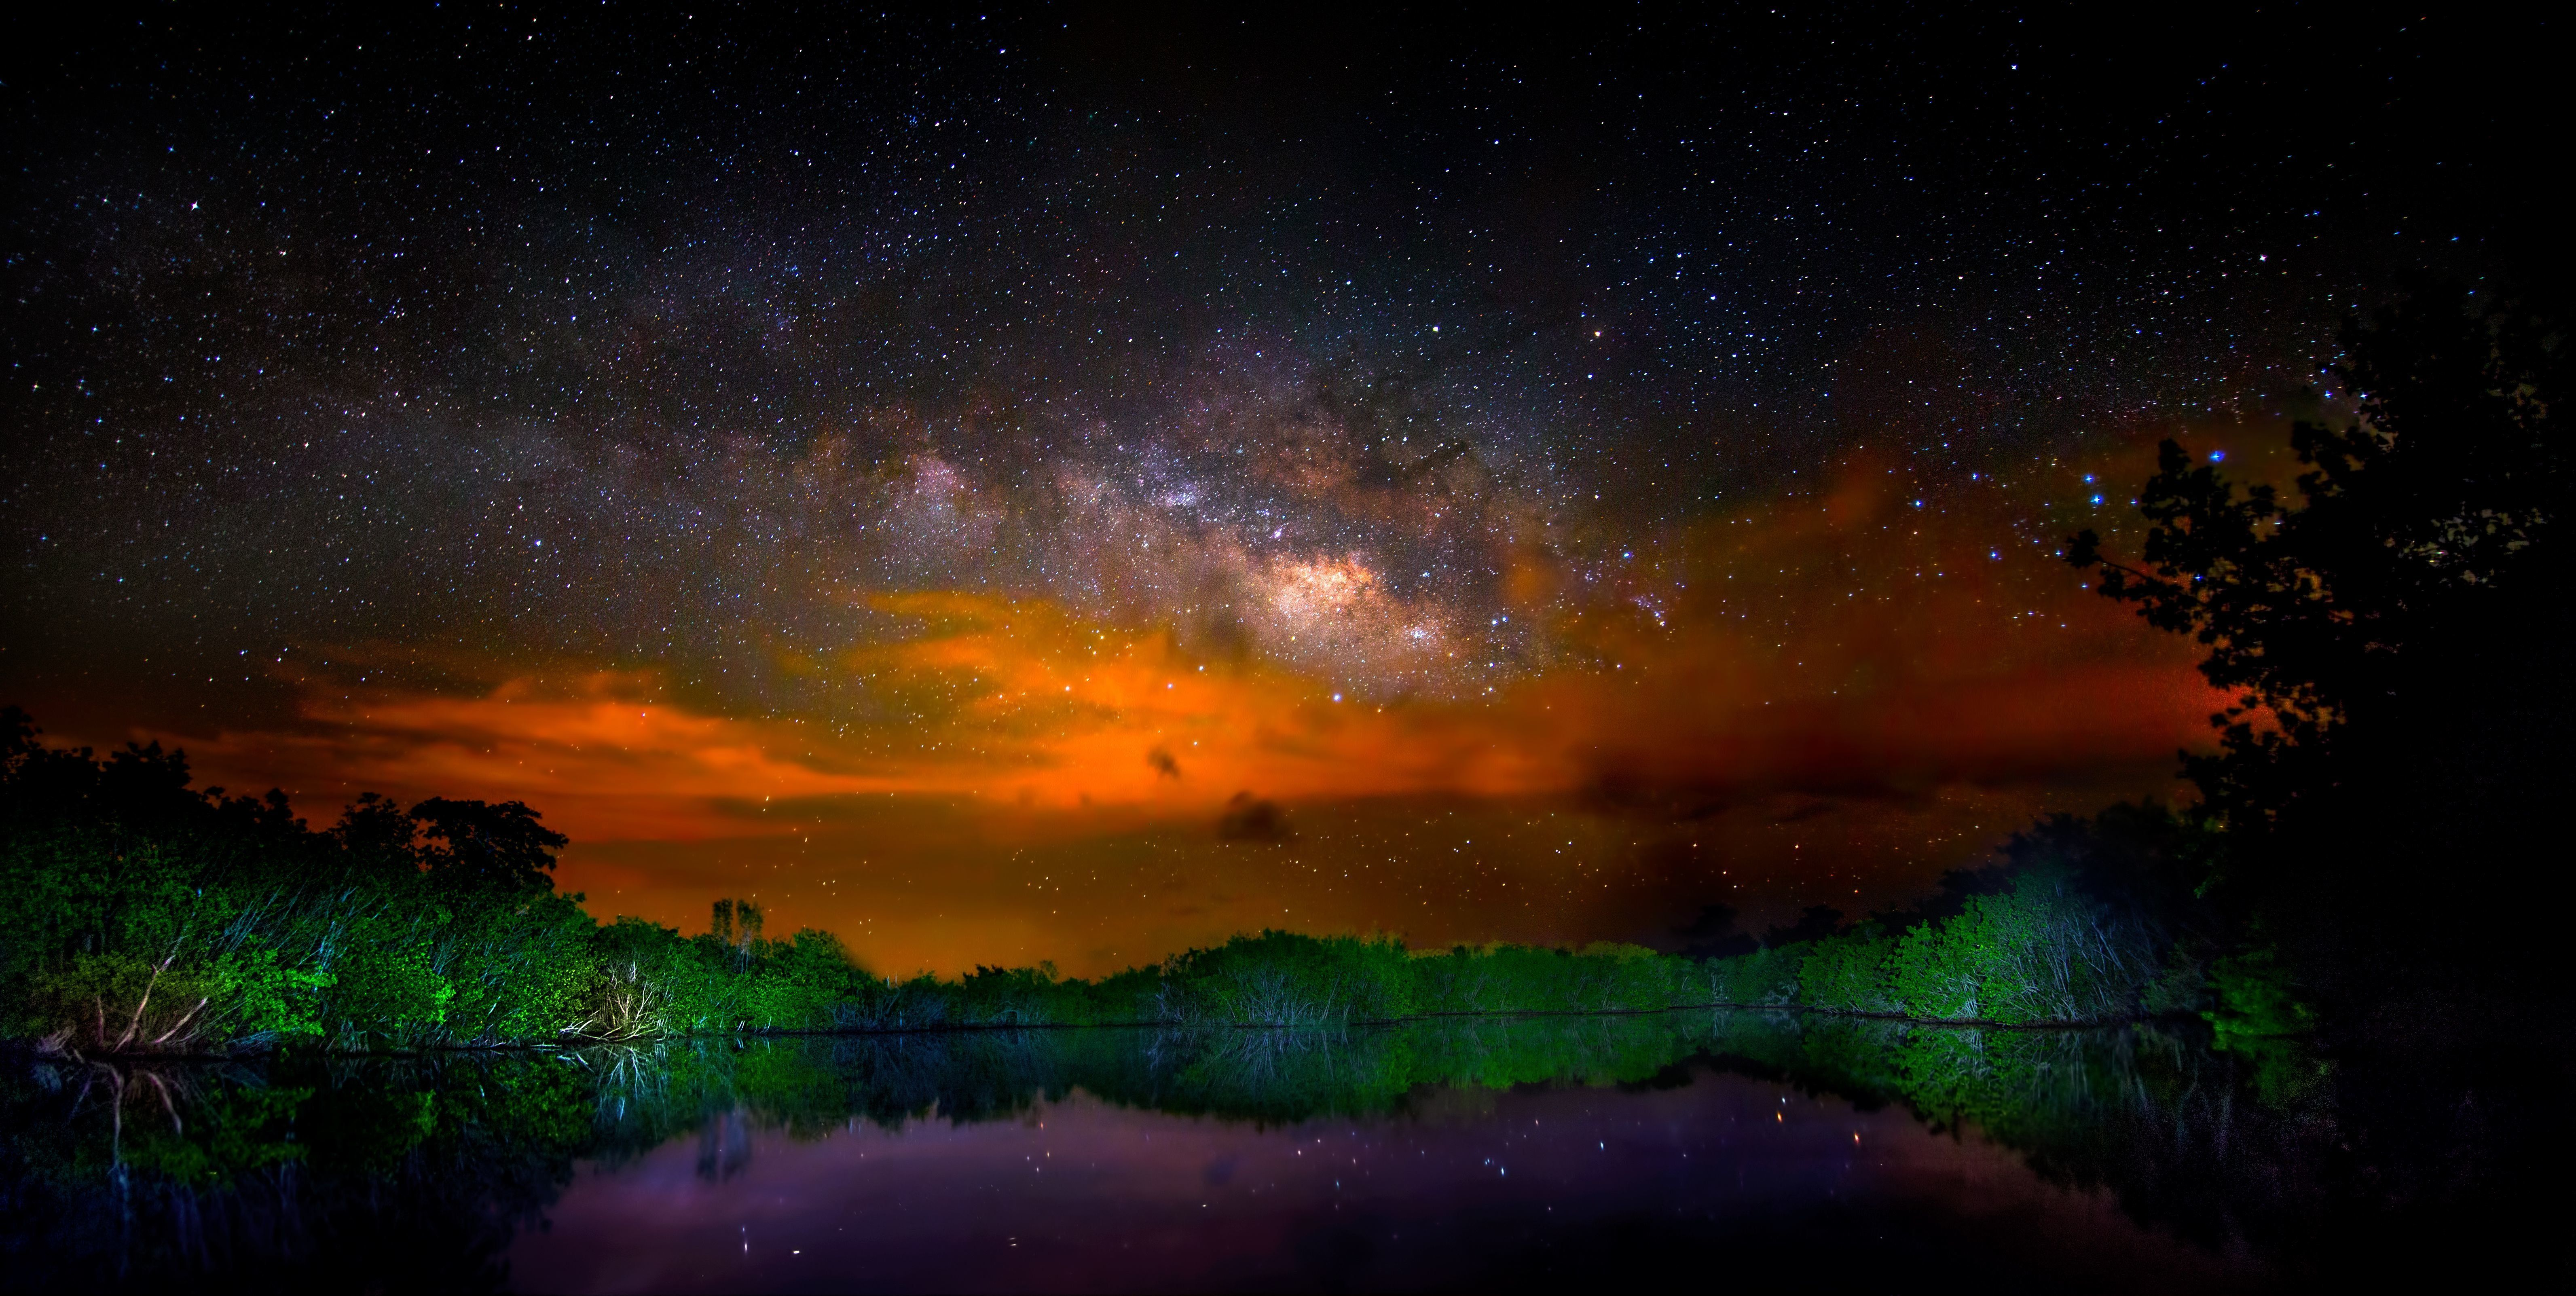 Brush fires in Everglades National Park make for a dramatic Milky Way in this